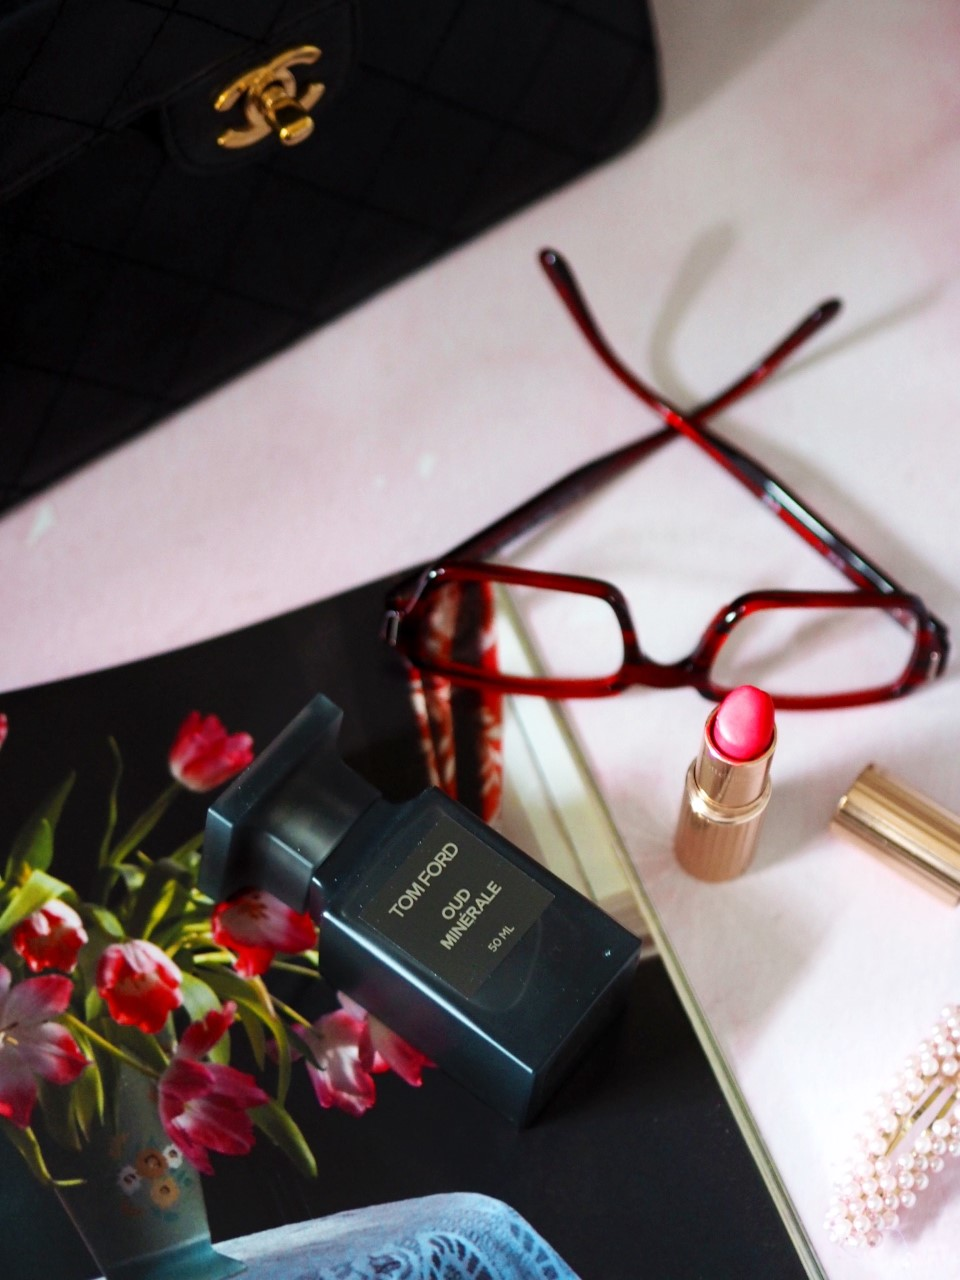 TOM FORD 'Oud Minerale' Fragrance Review perfume